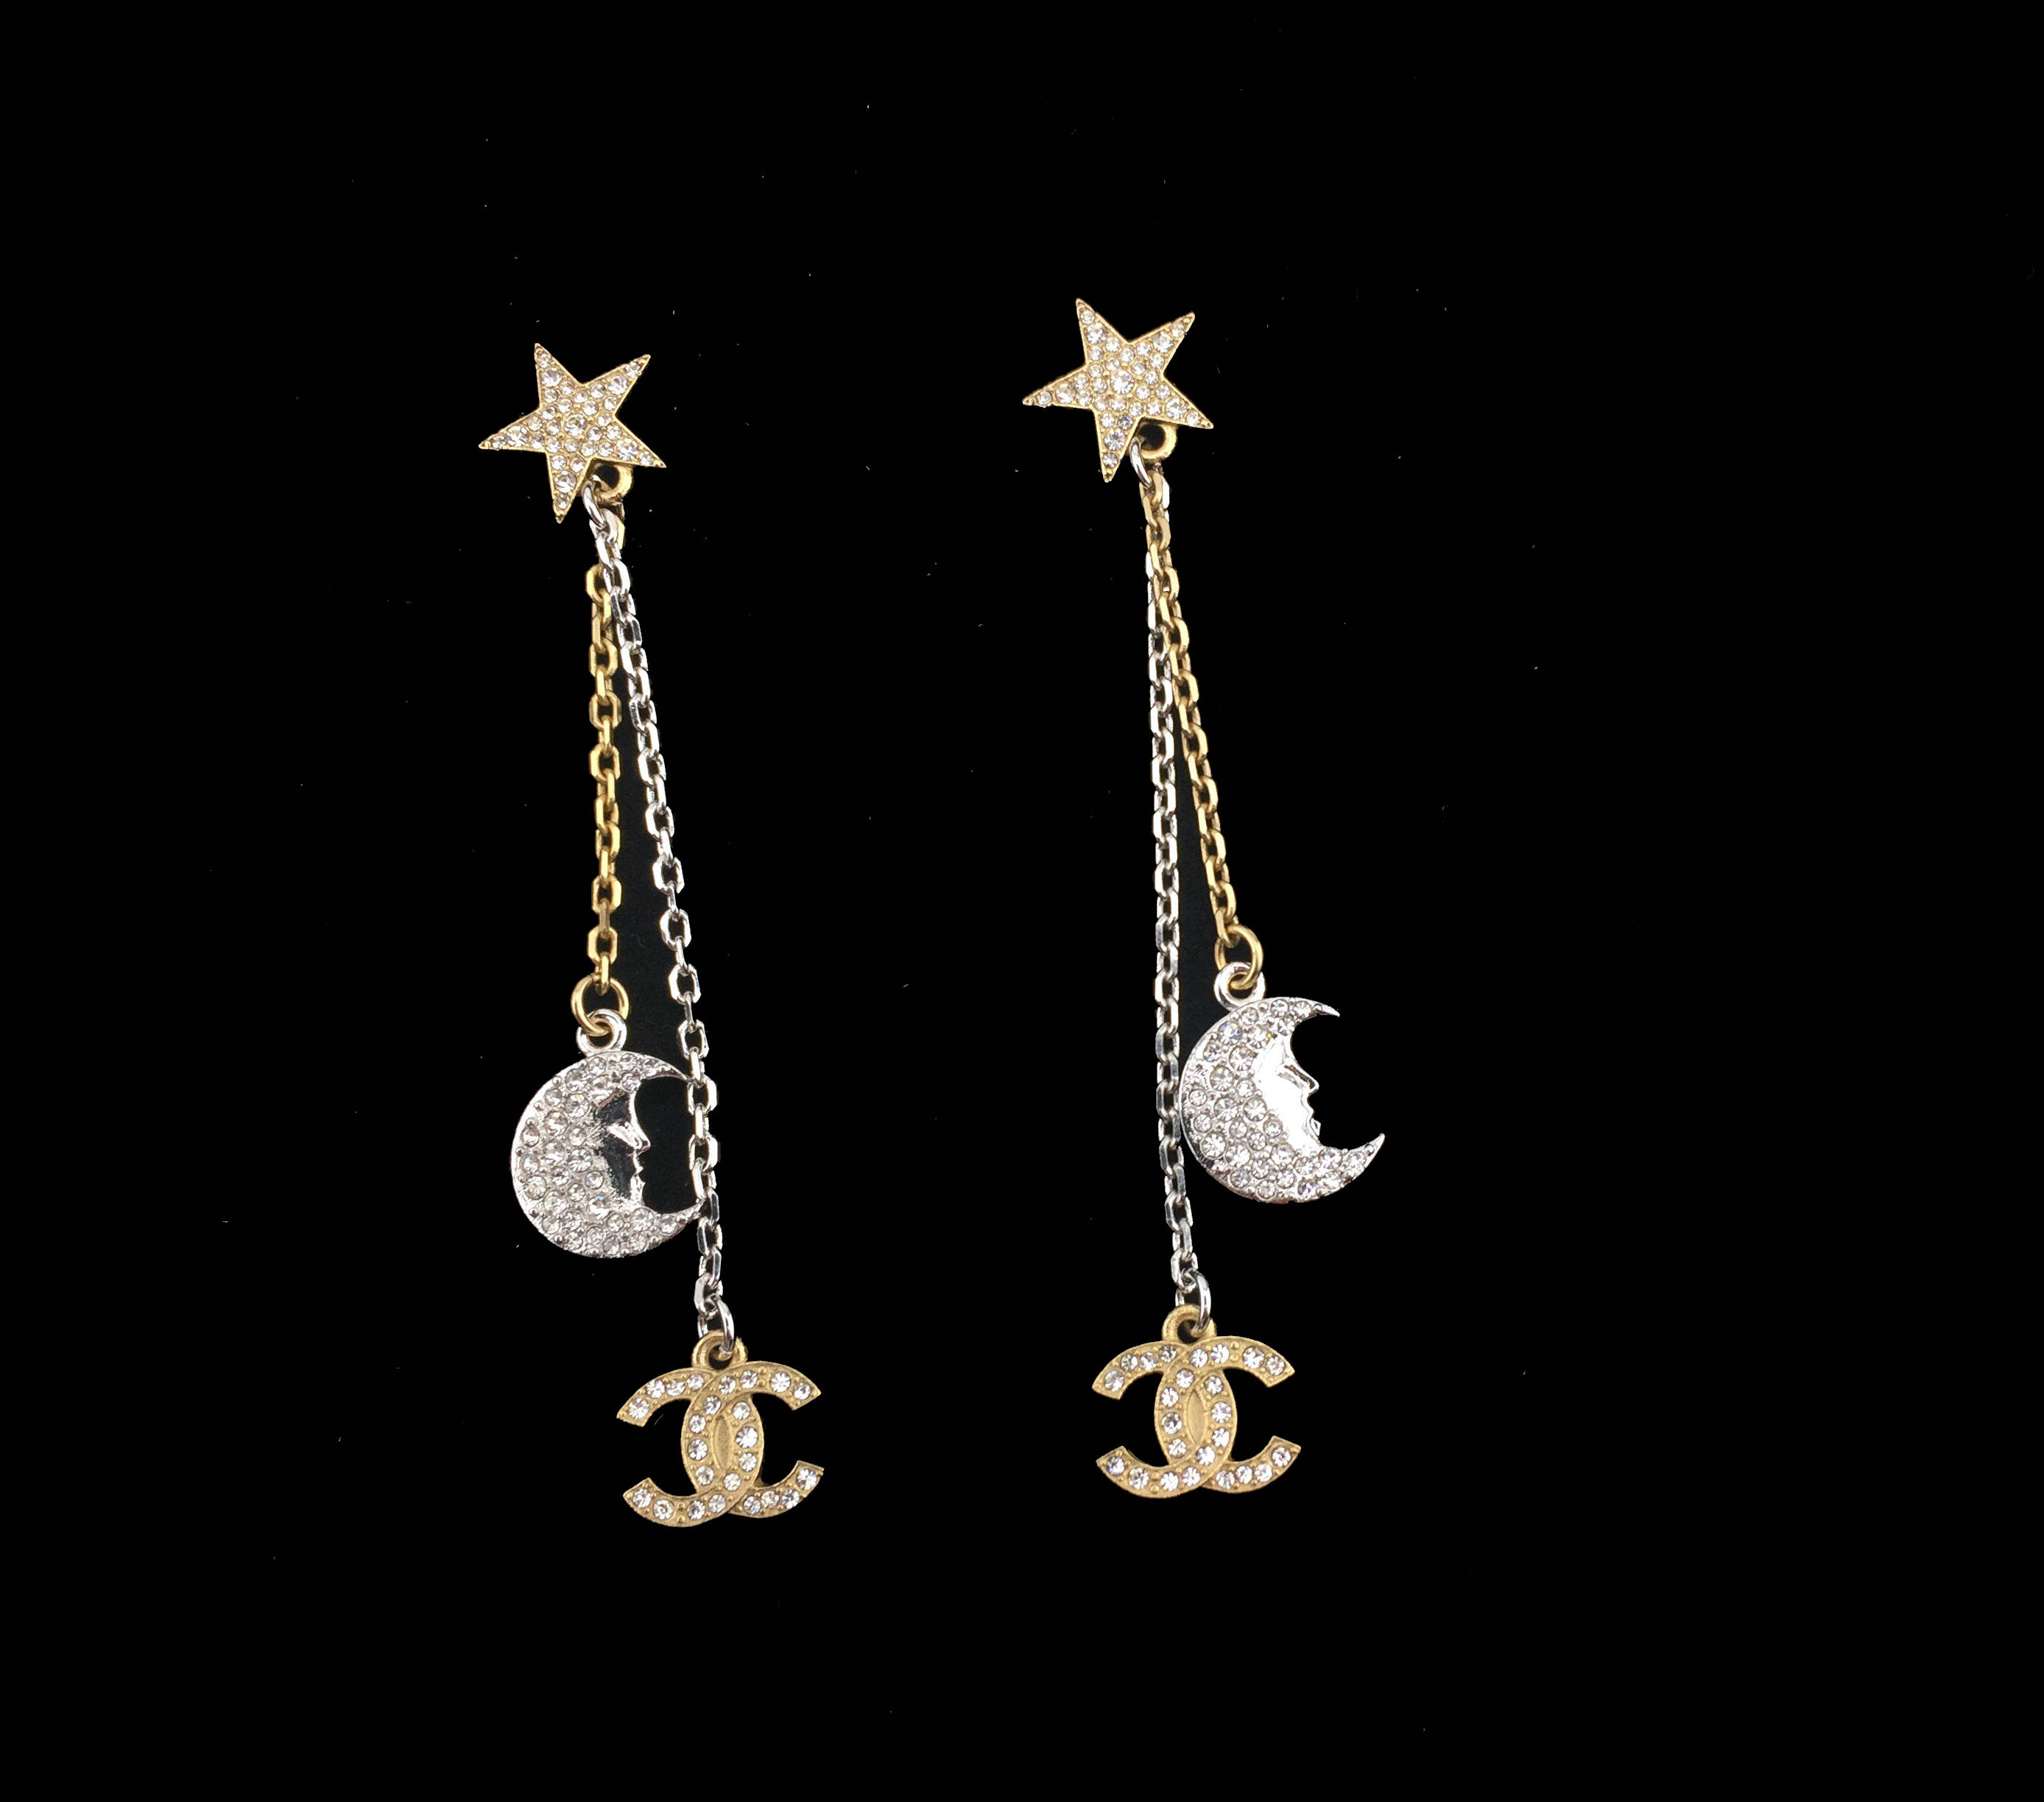 lover earrings deco post s hunter web hare product and crescent moon mini tempo